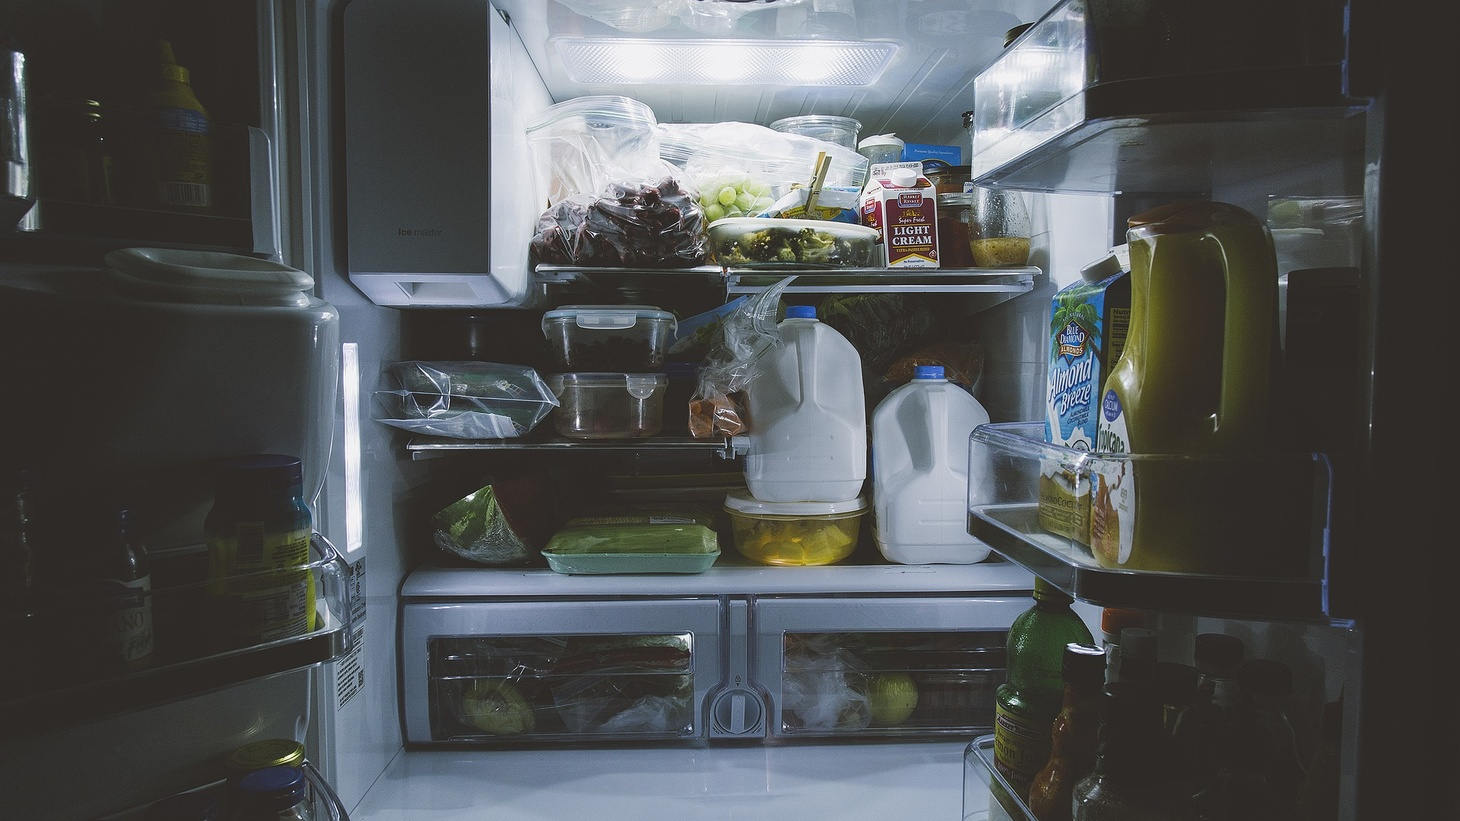 Food writer Dakota Kim describes playing Jenga in the refrigerator with the containers of Korean food her mother voraciously makes and brings over during the pandemic.